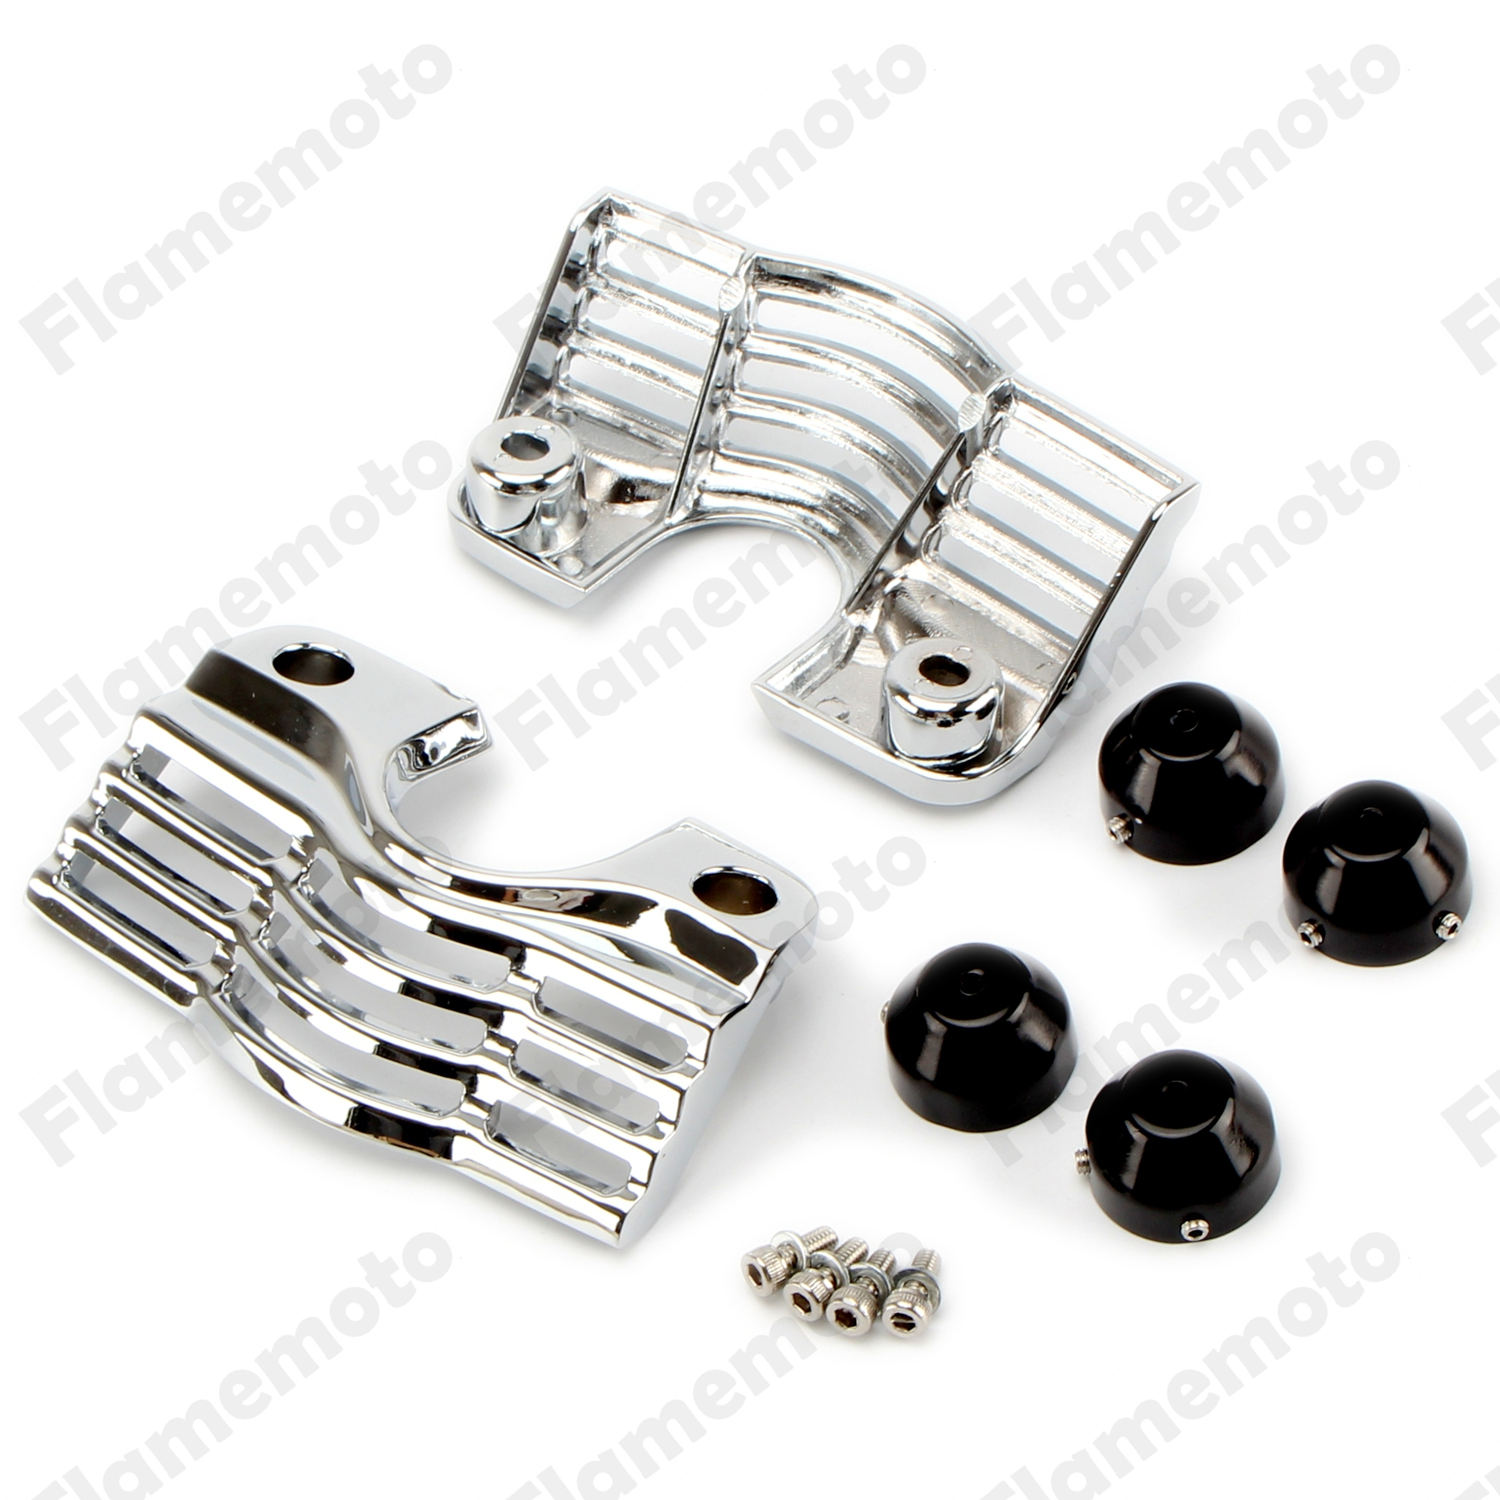 Motorbike Parts Chrome Finned Spark Slotted Plug Head Bolt Covers For Harley Trikes Road King<br>